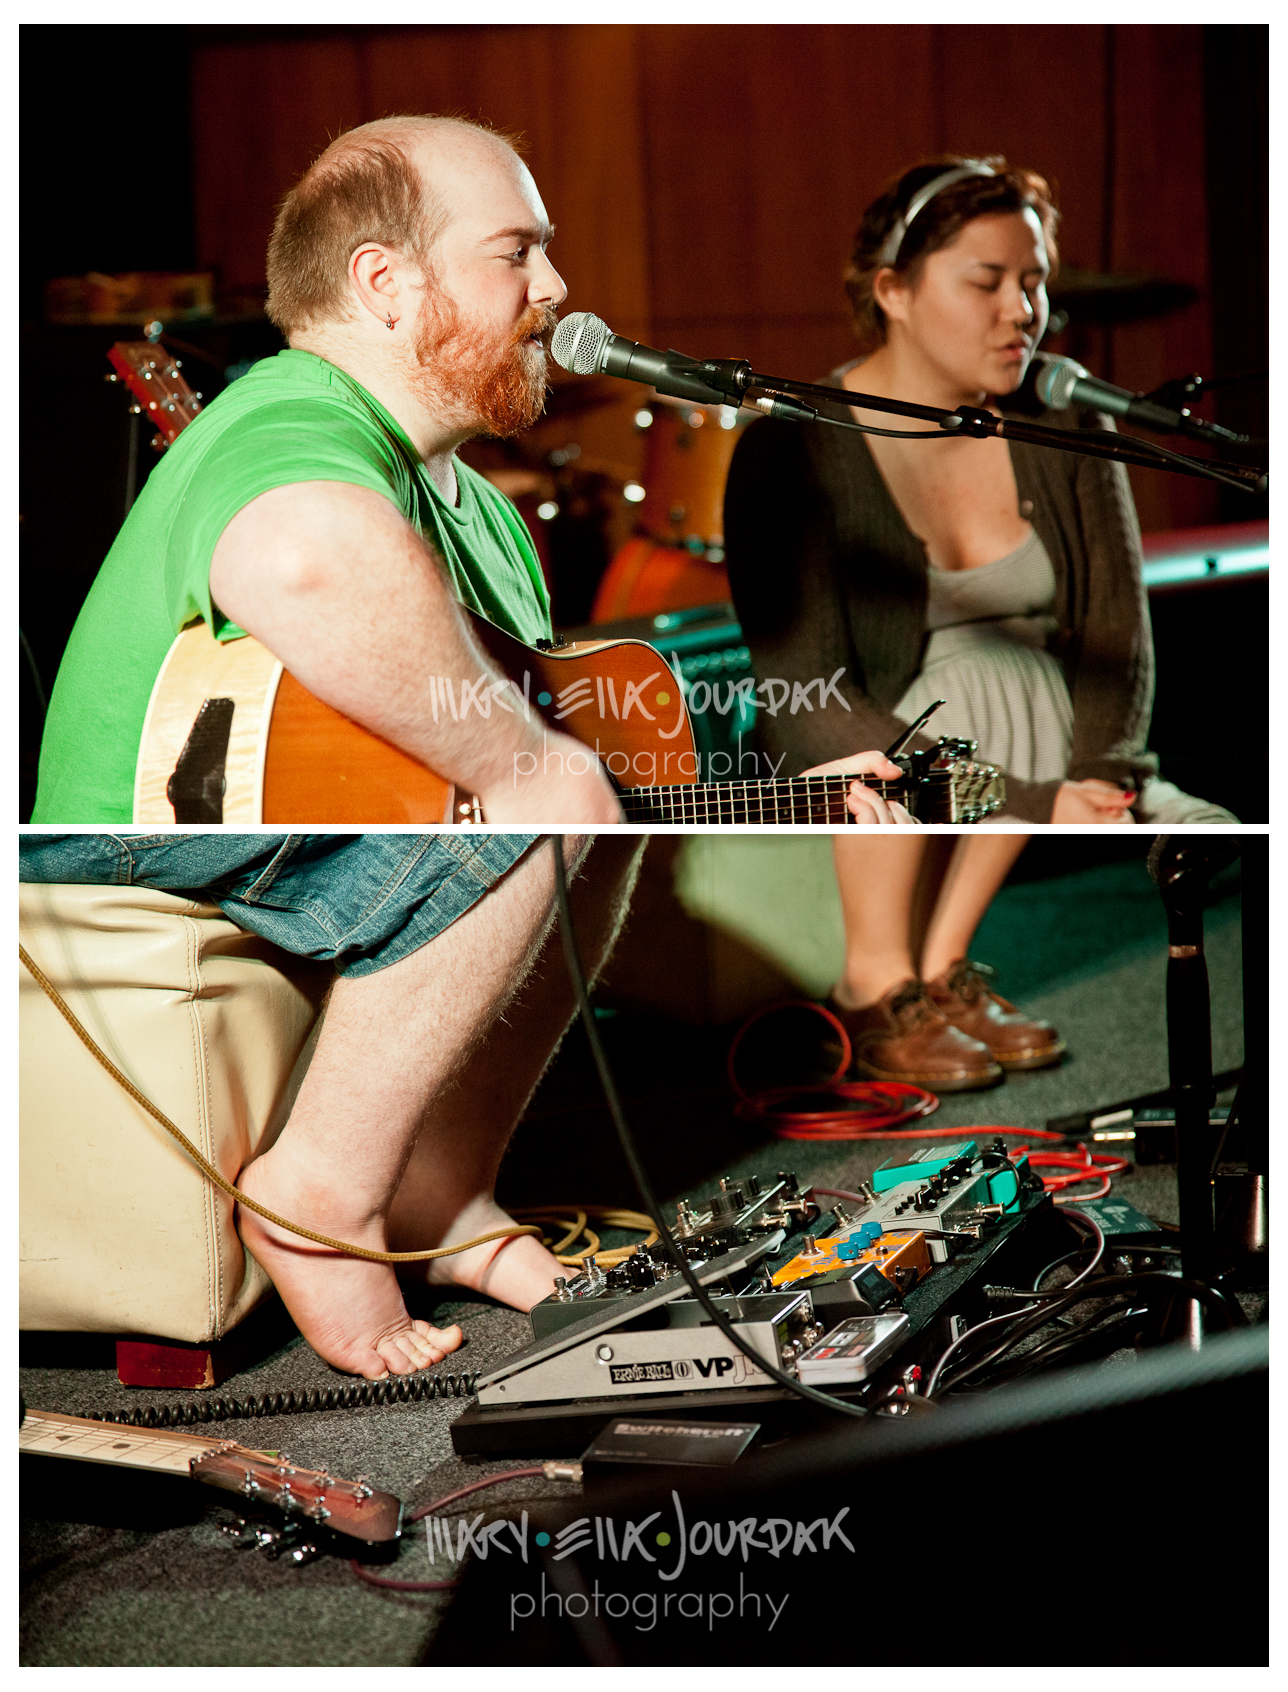 live music downtown historic annapolis maryland band photography photographer acoustic cole cash